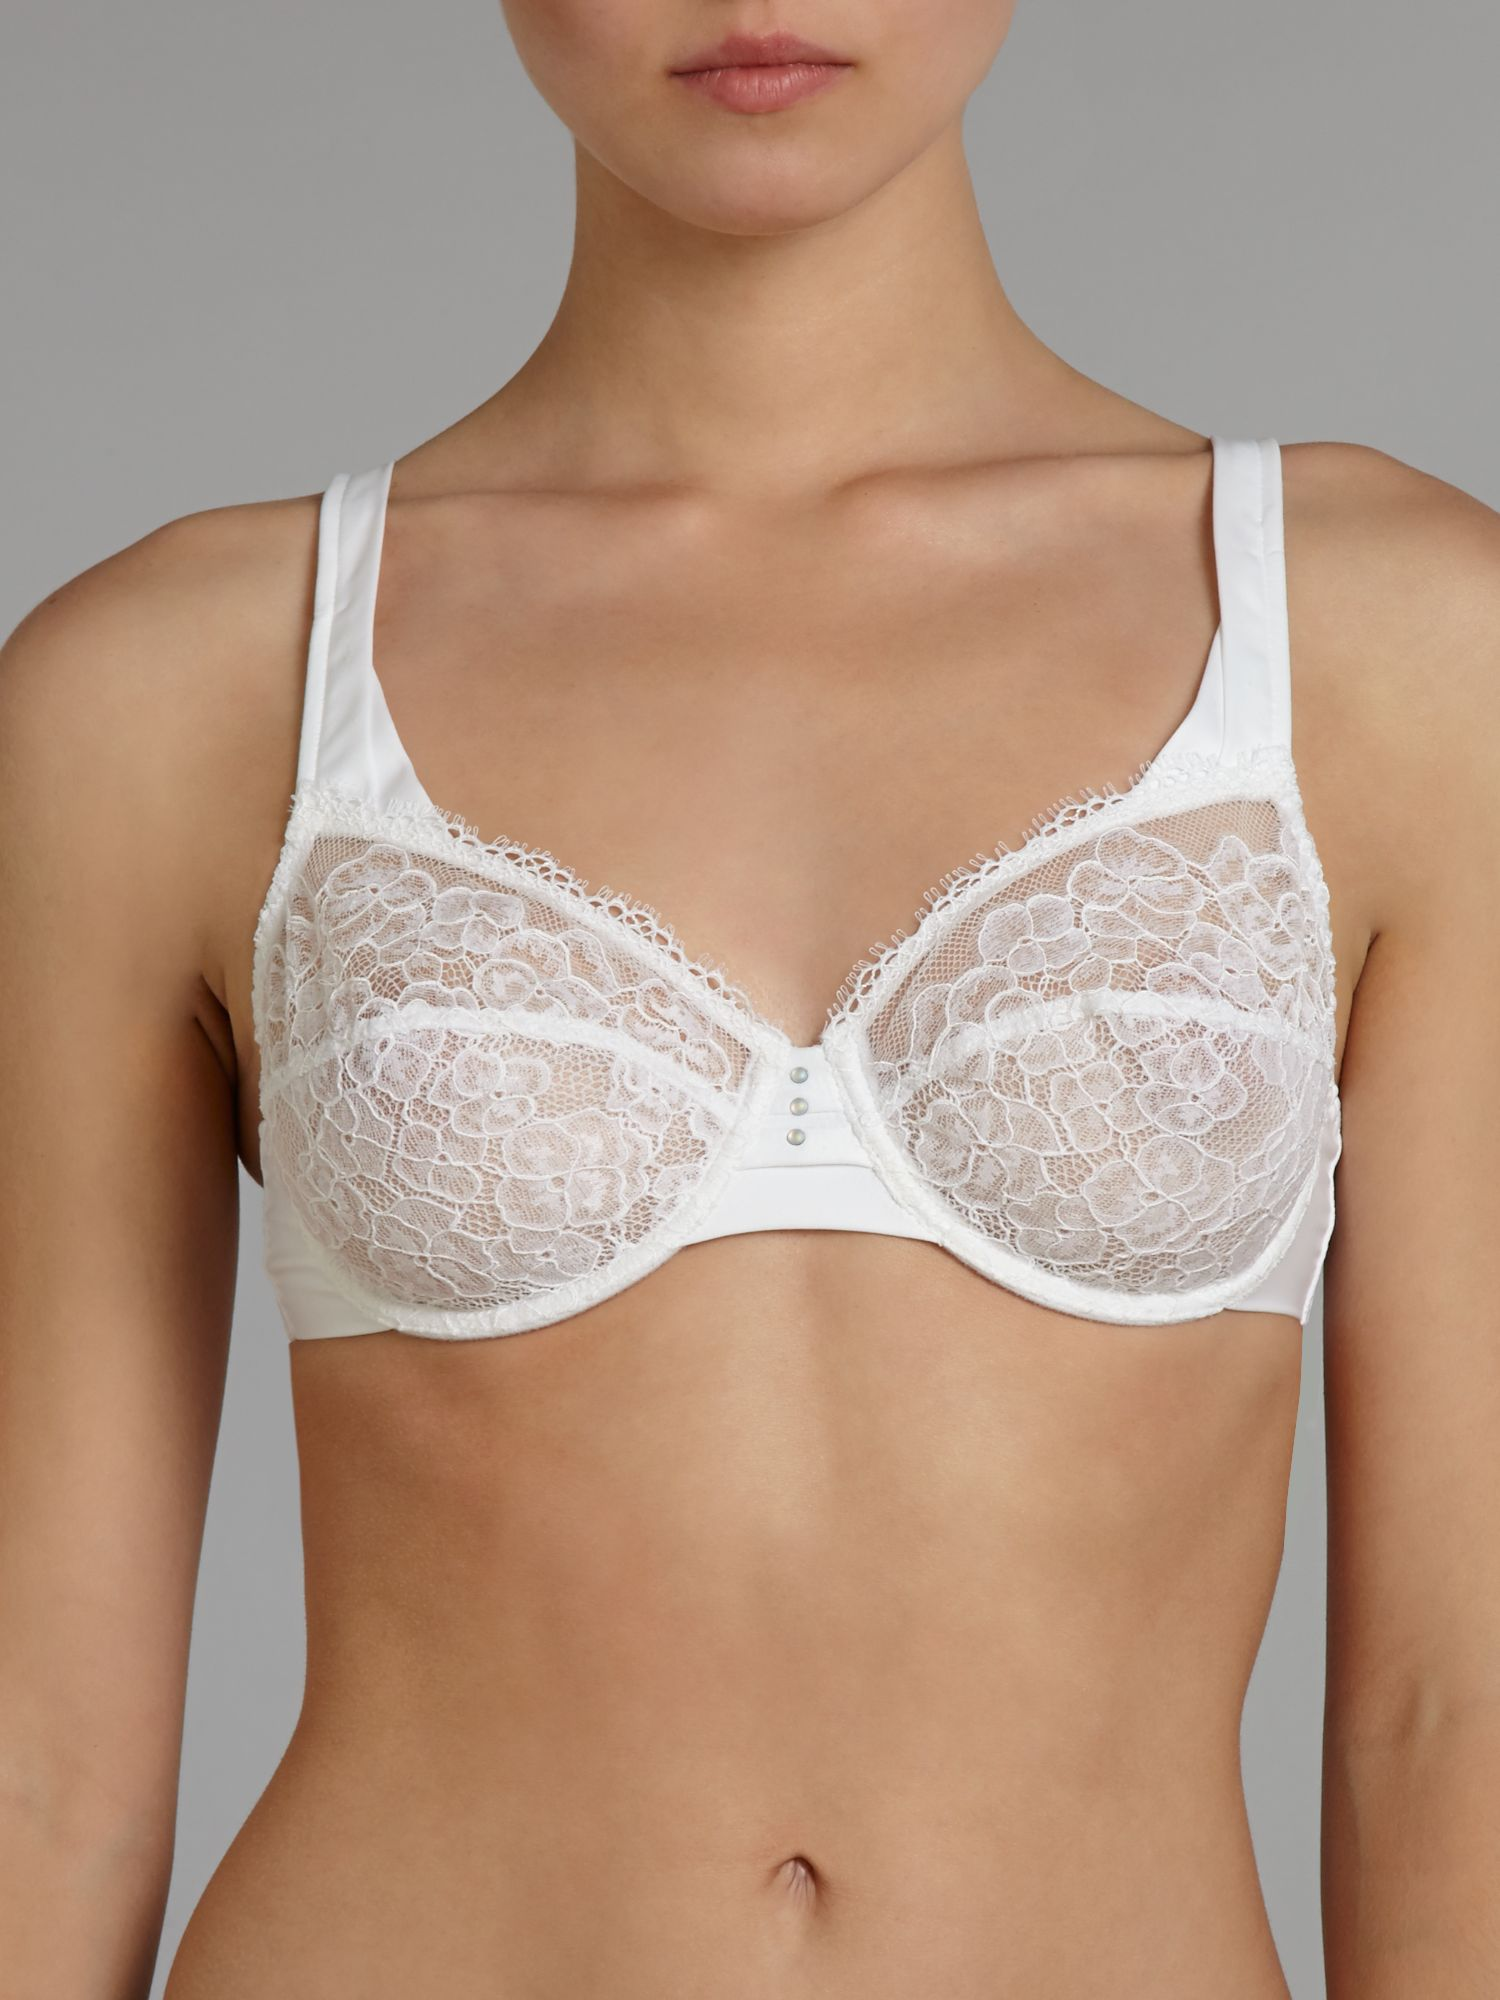 Pensees underwired bra